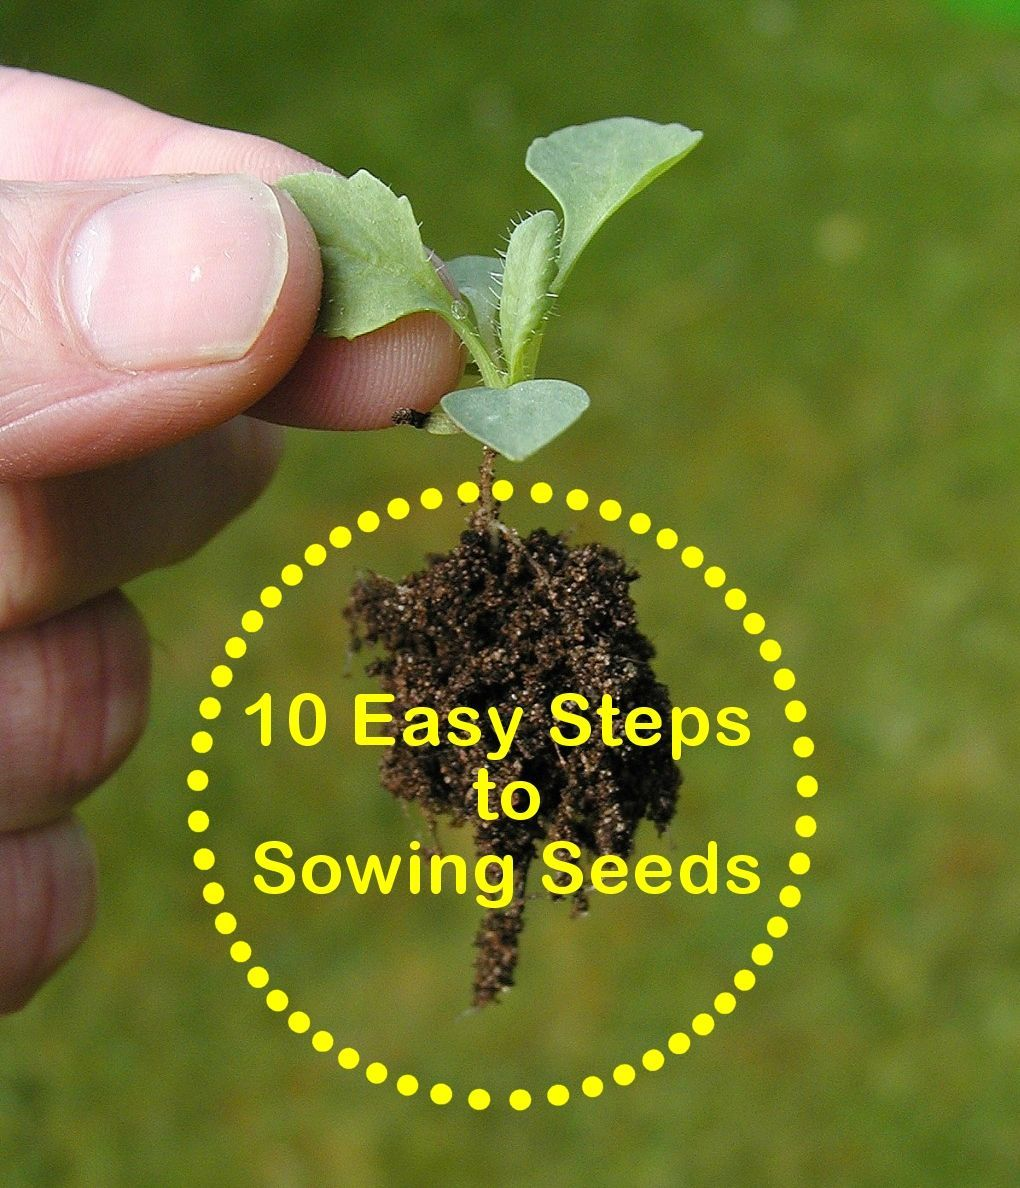 Urban Vegetable Gardening For Beginners: 10 Easy Steps To Sowing Seeds